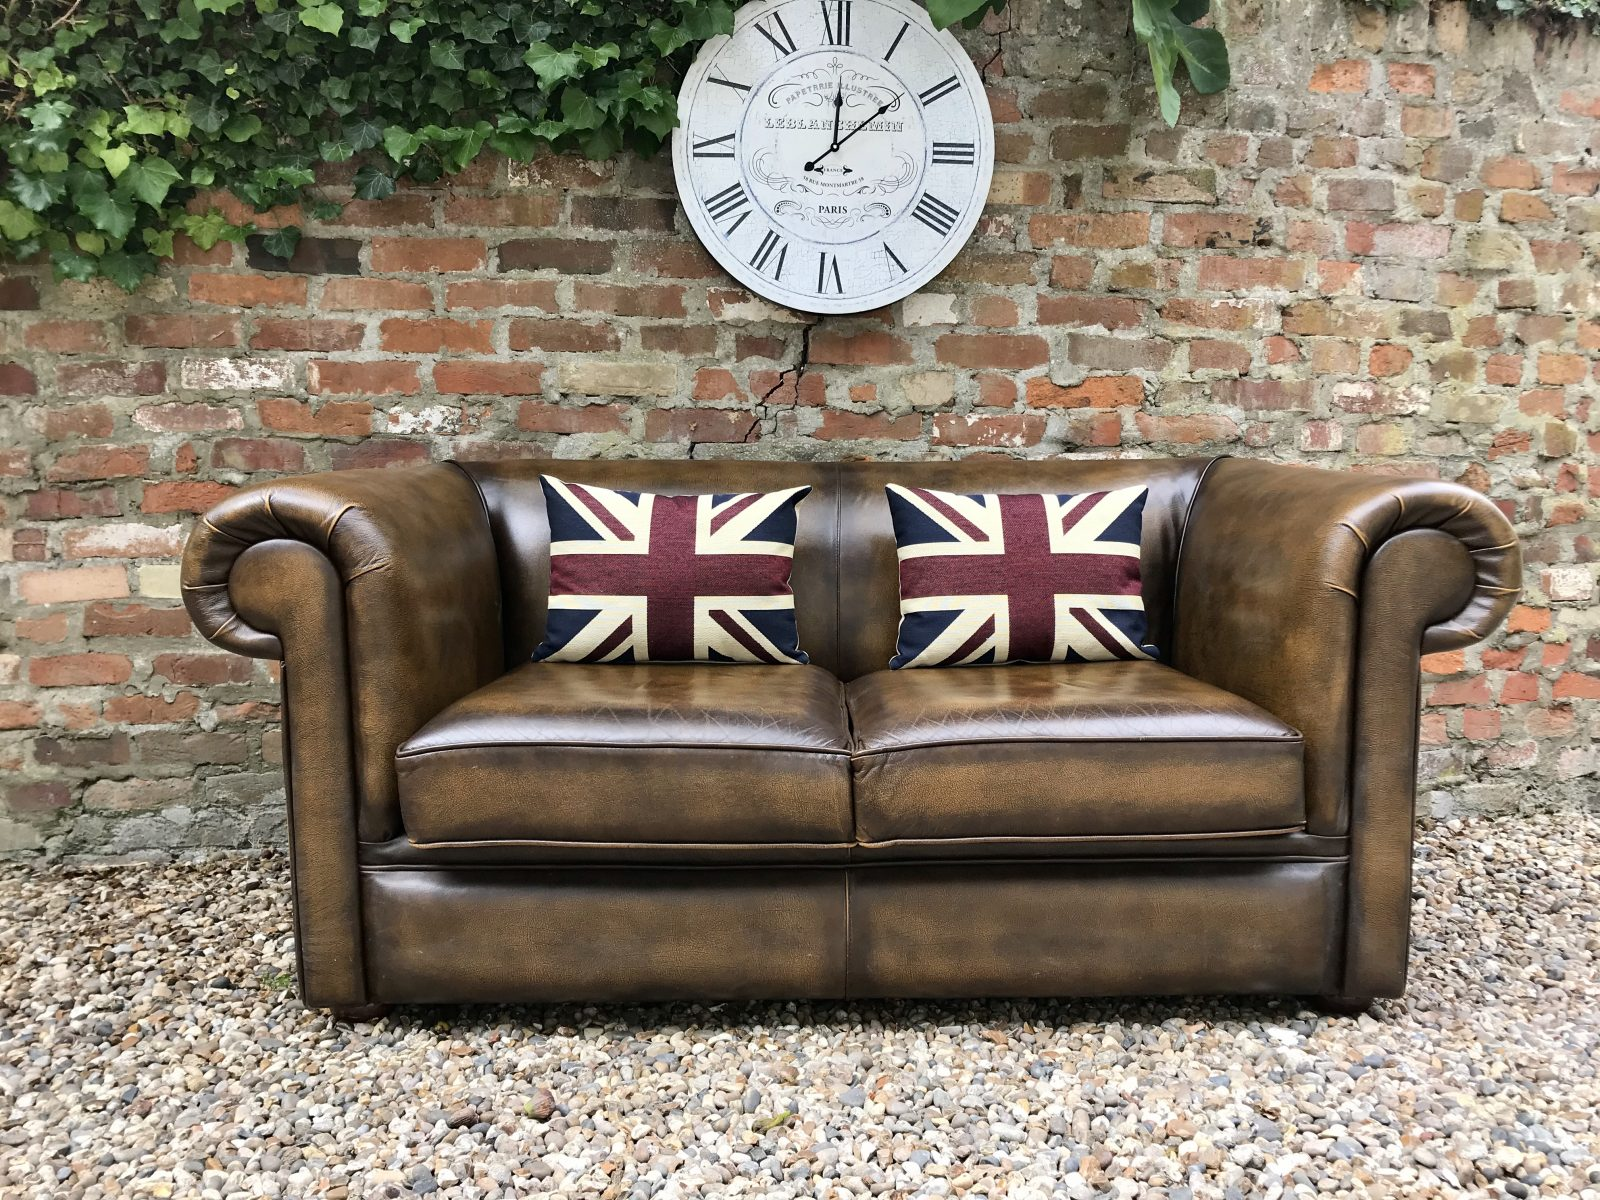 Stunning Antique Golden Brown Chesterfield Sofa.